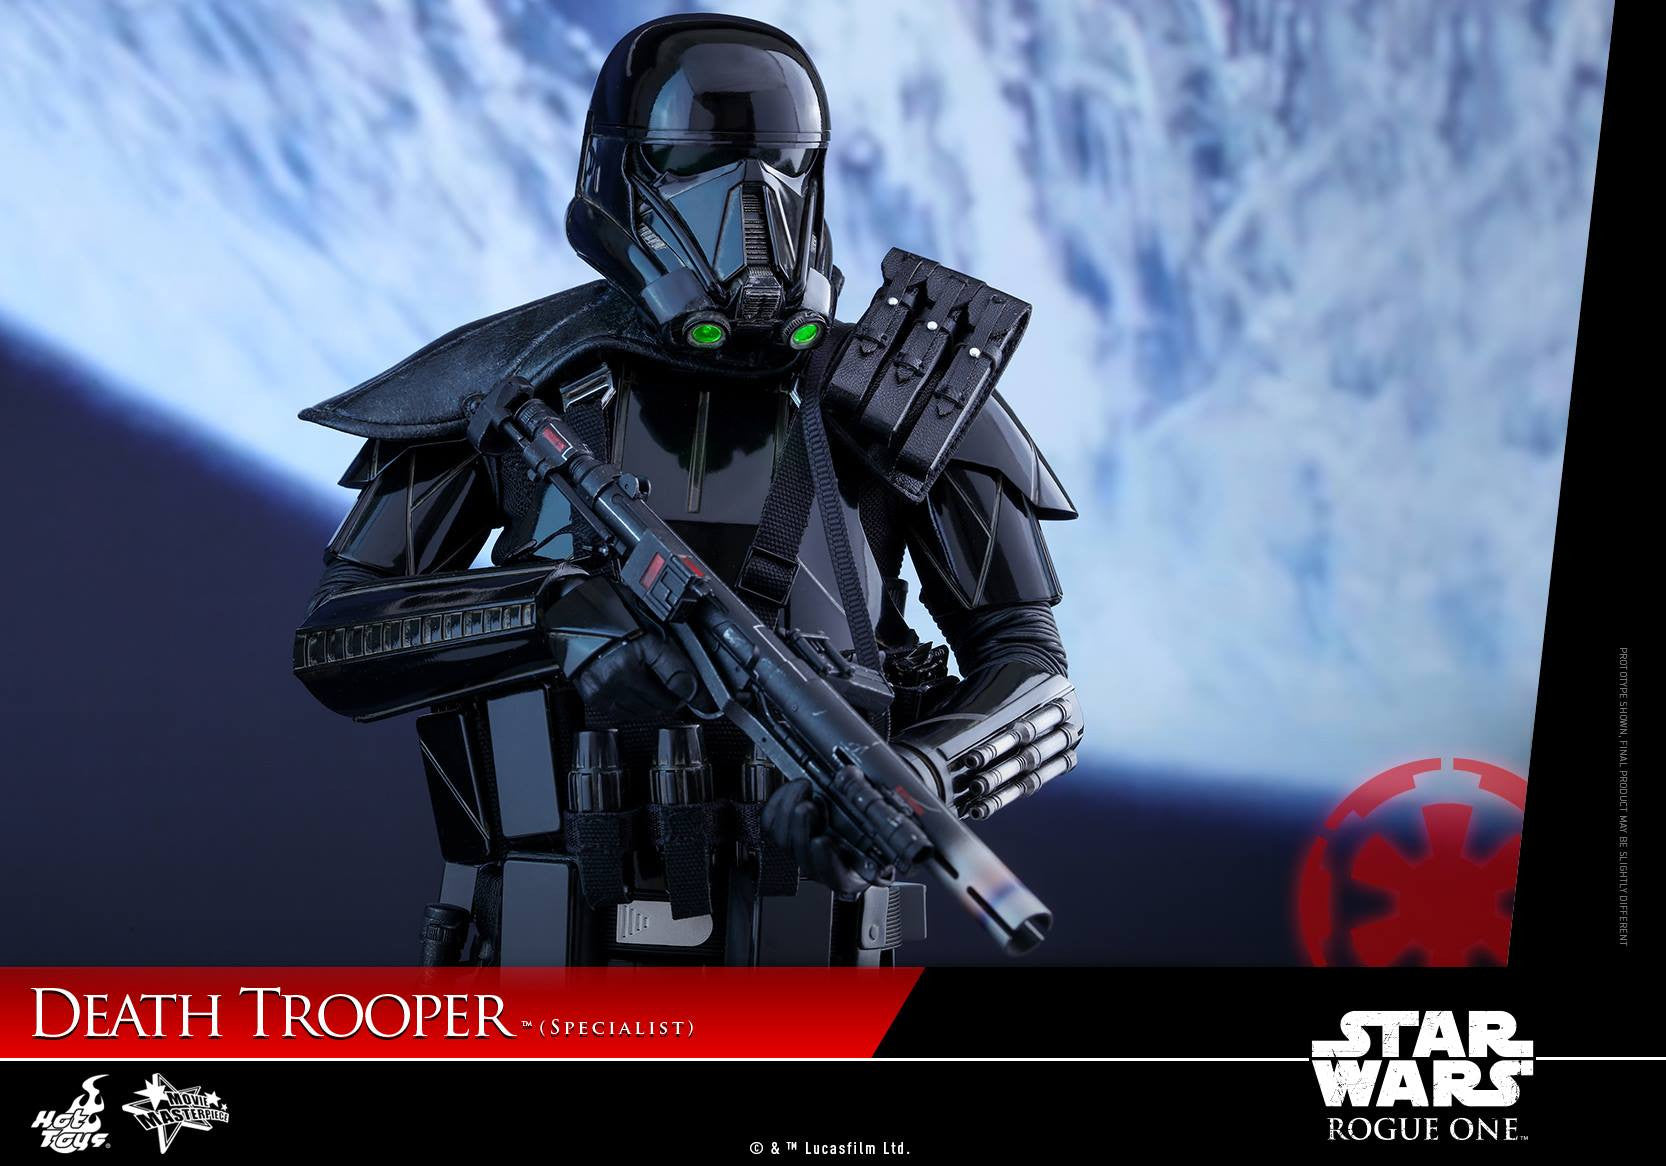 Hot Toys - MMS385 - Rogue One: A Star Wars Story - Death Trooper (Specialist) - Marvelous Toys - 20